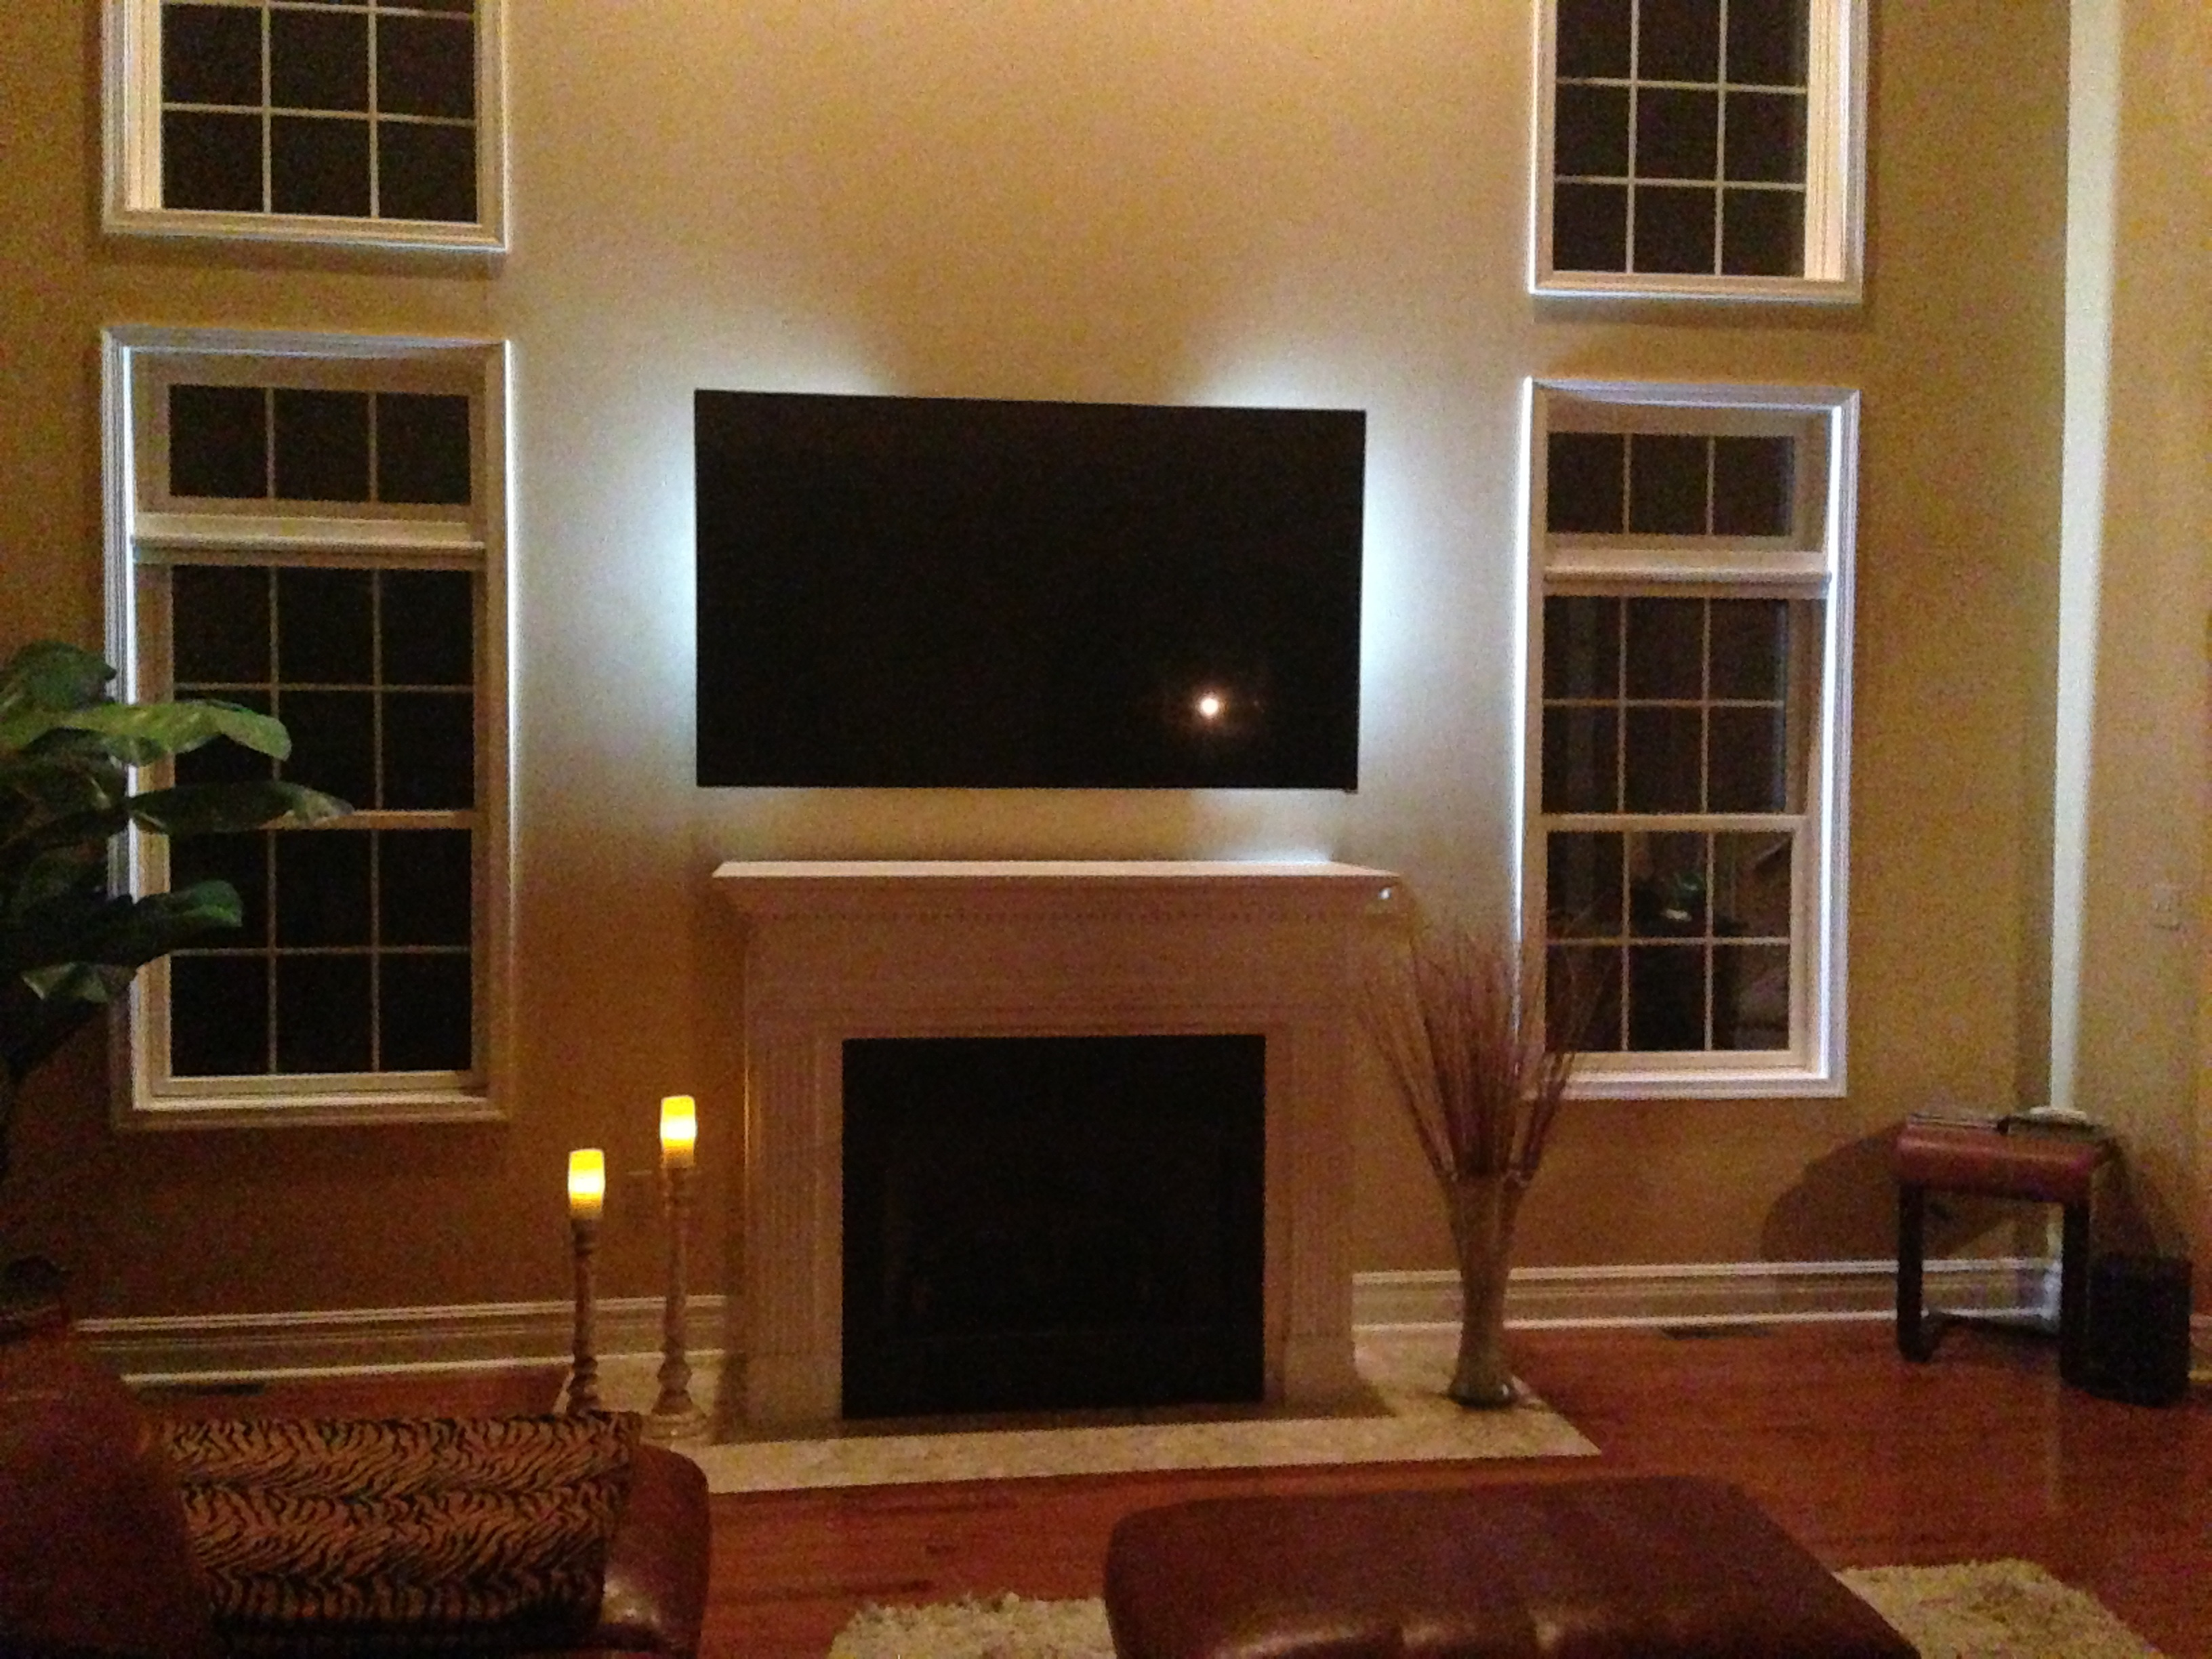 Tv Above Fireplace Mounting Dilemma Need A Tv Mount That Does